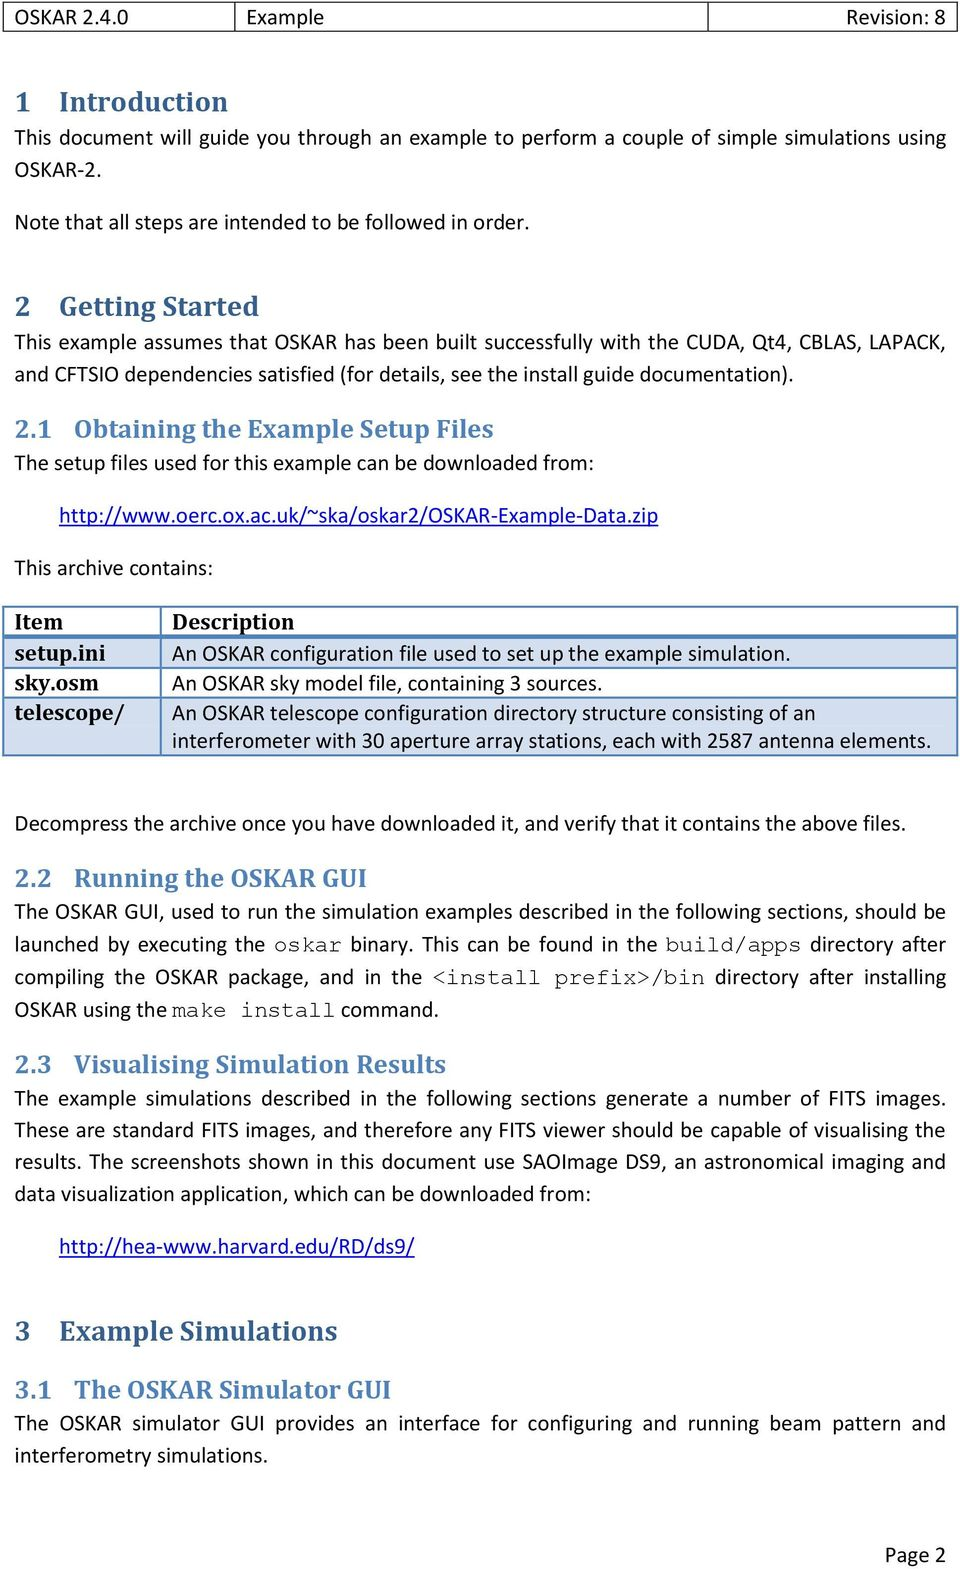 2.1 Obtaining the Example Setup Files The setup files used for this example can be downloaded from: http://www.oerc.ox.ac.uk/~ska/oskar2/oskar-example-data.zip This archive contains: Item setup.